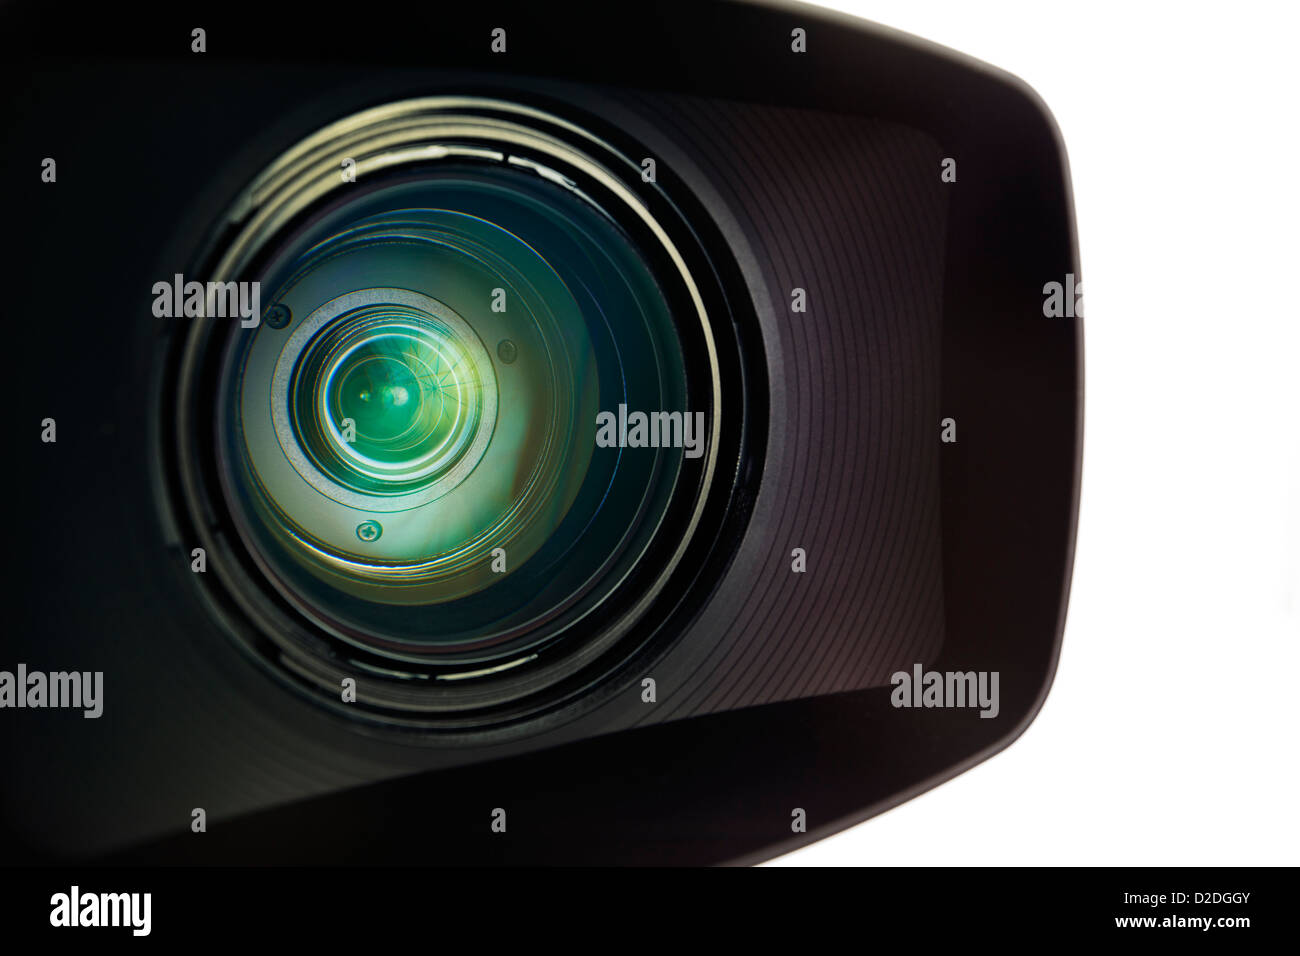 Close-up of a professional television camera lens against a plain white background. - Stock Image